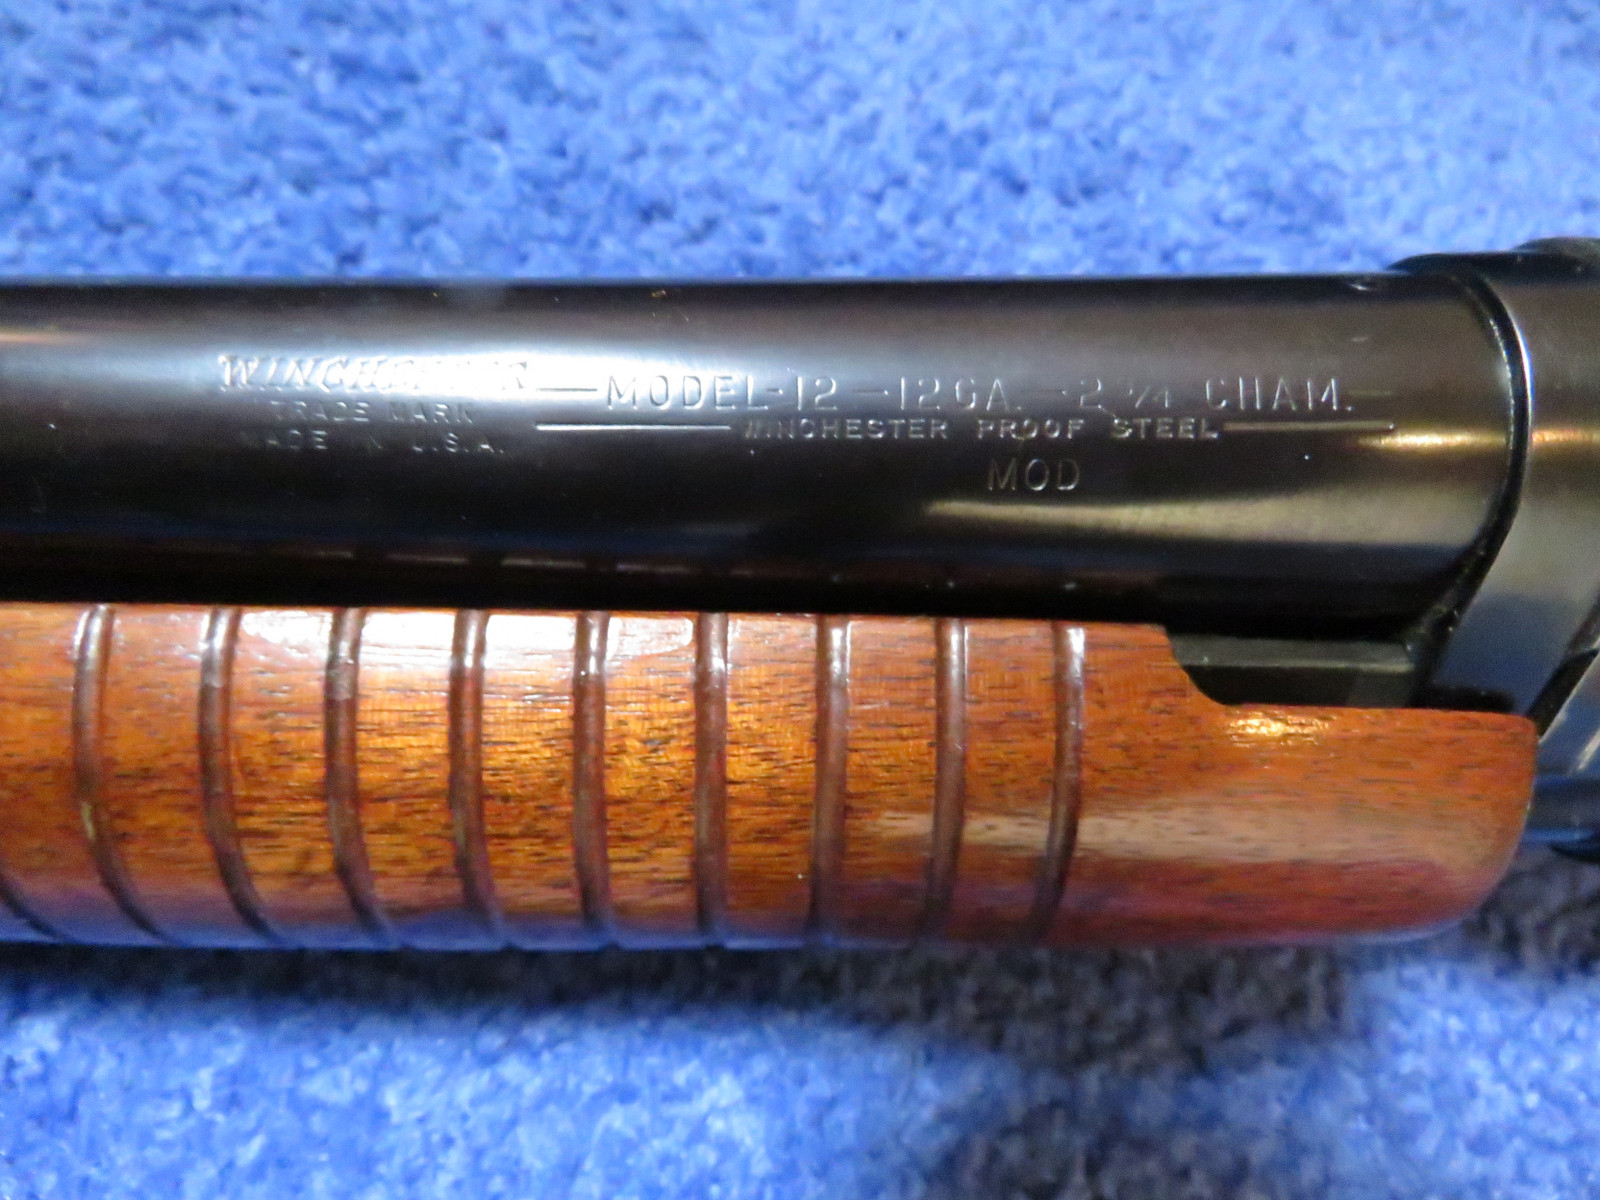 Winchester Model 12 12 Gauge Shotgun - Image 4